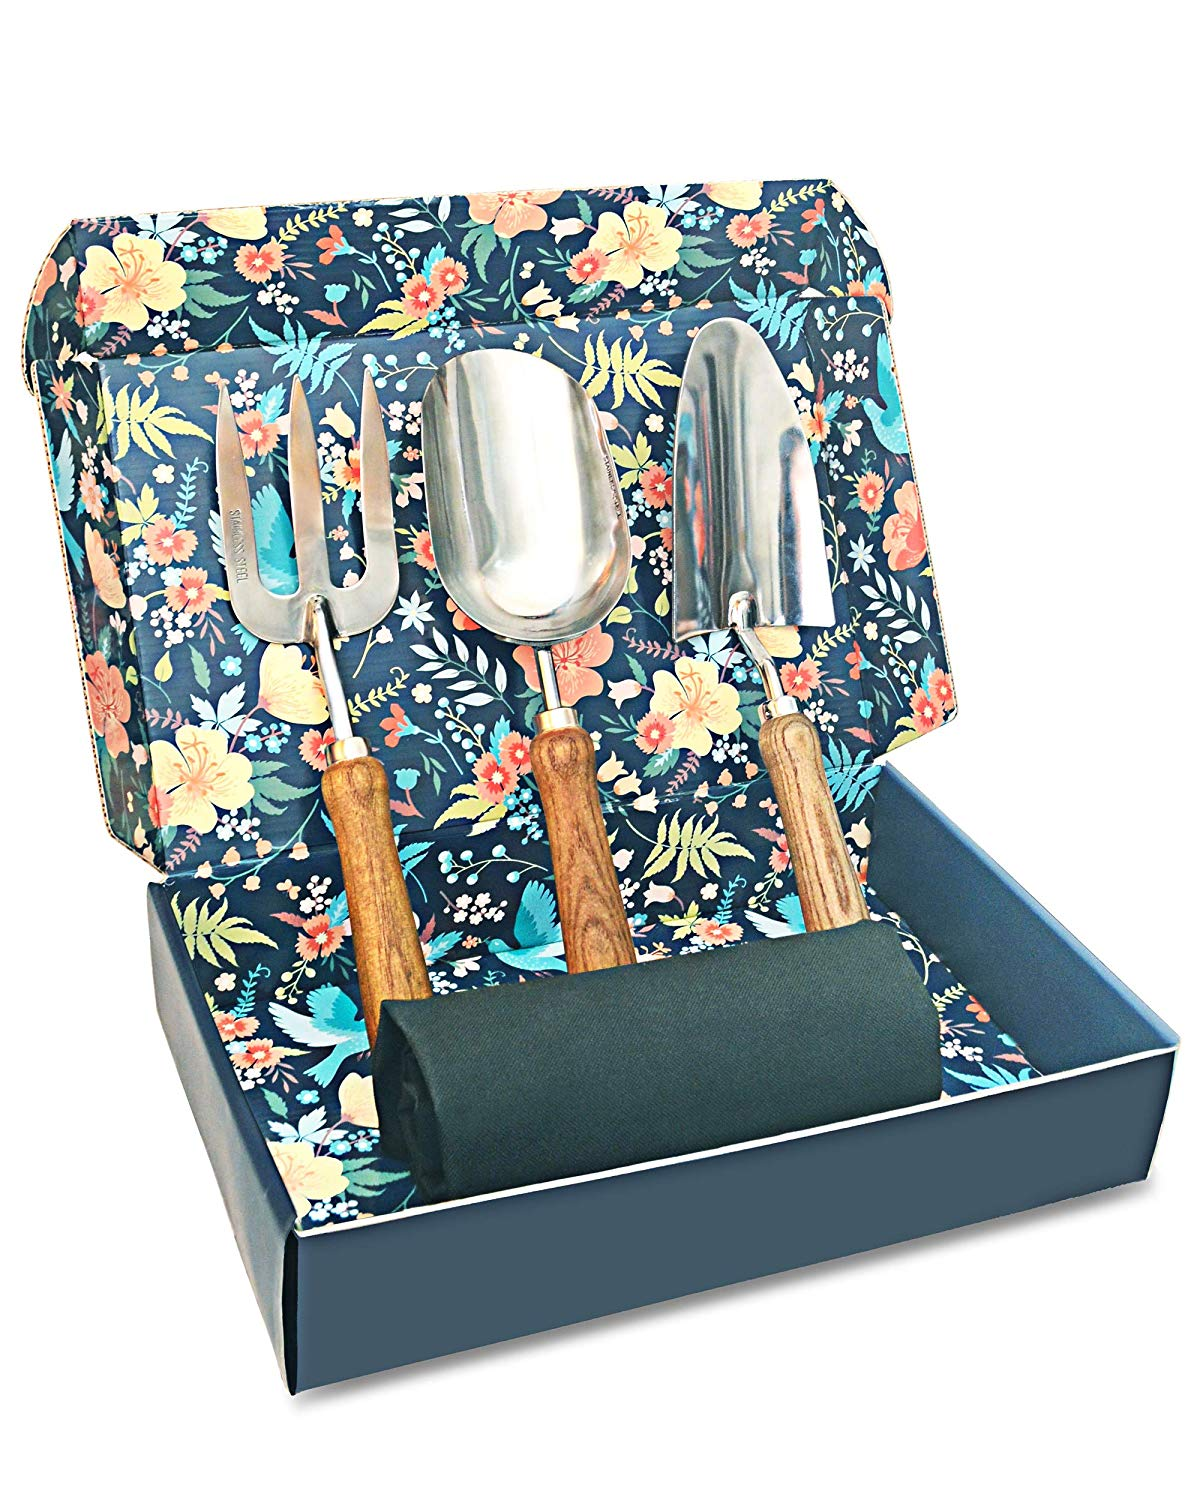 sunphio gardening tools sets make great gifts for mom